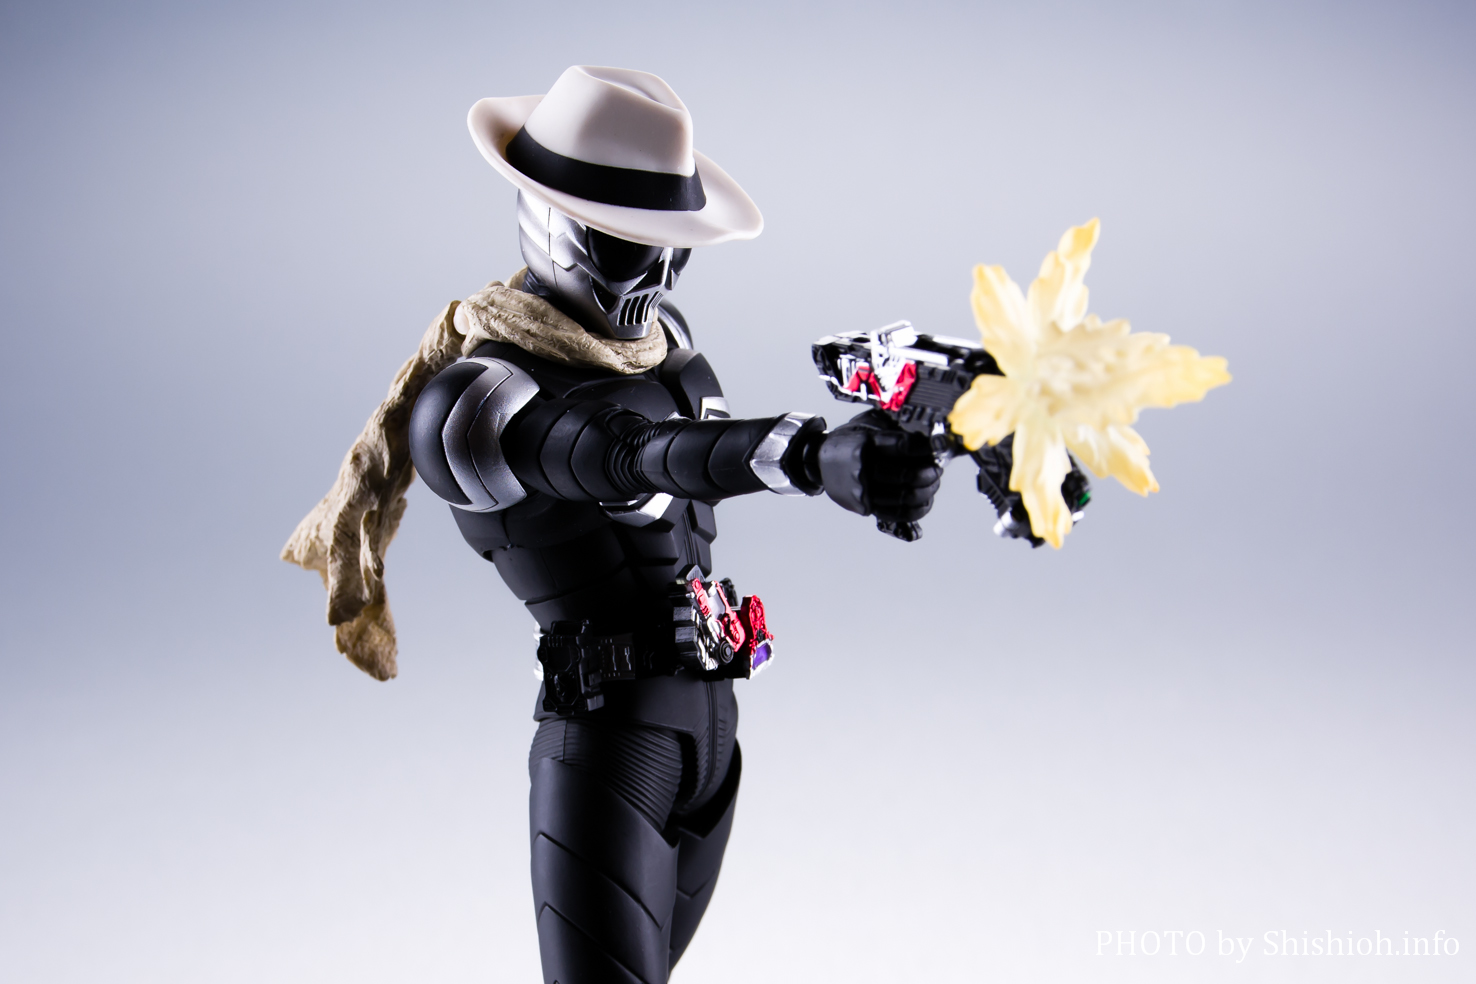 S.H.Figuarts(真骨彫製法)仮面ライダースカル